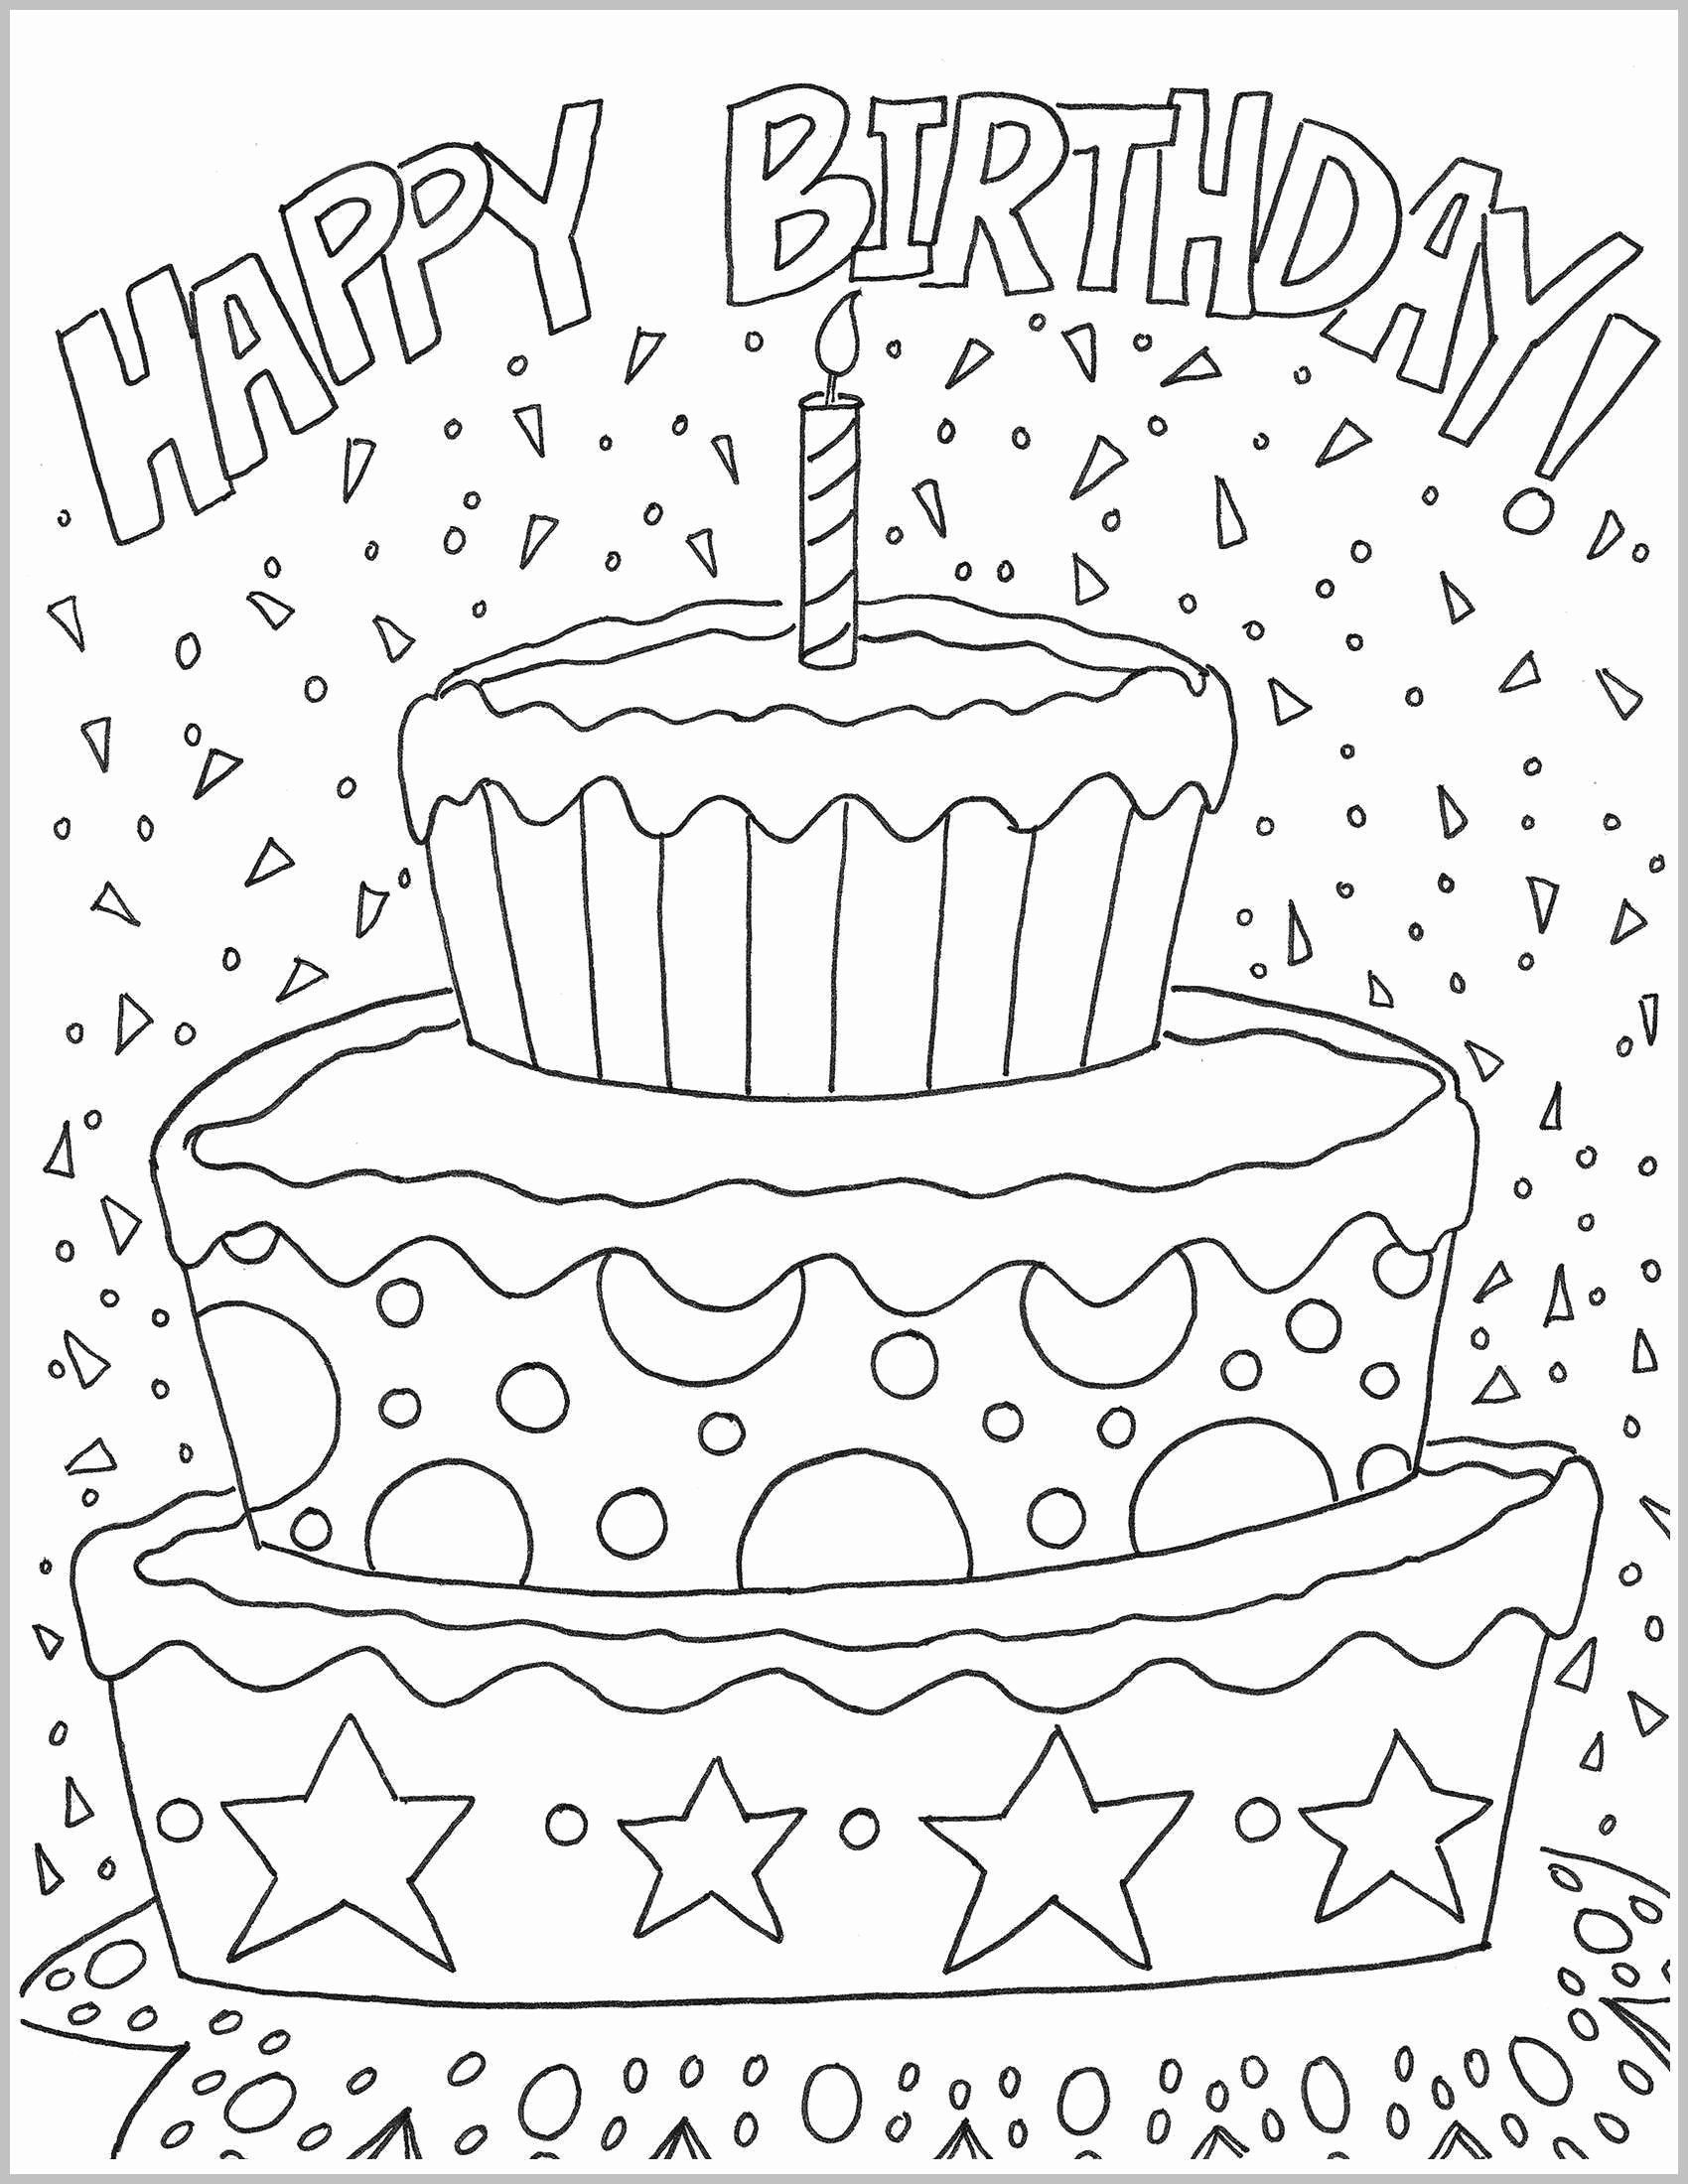 Happy 3rd Birthday Grandson Luxury Happy Birthday Cake Coloring Sheet Elegant Bir In 2020 Coloring Birthday Cards Happy Birthday Coloring Pages Birthday Coloring Pages